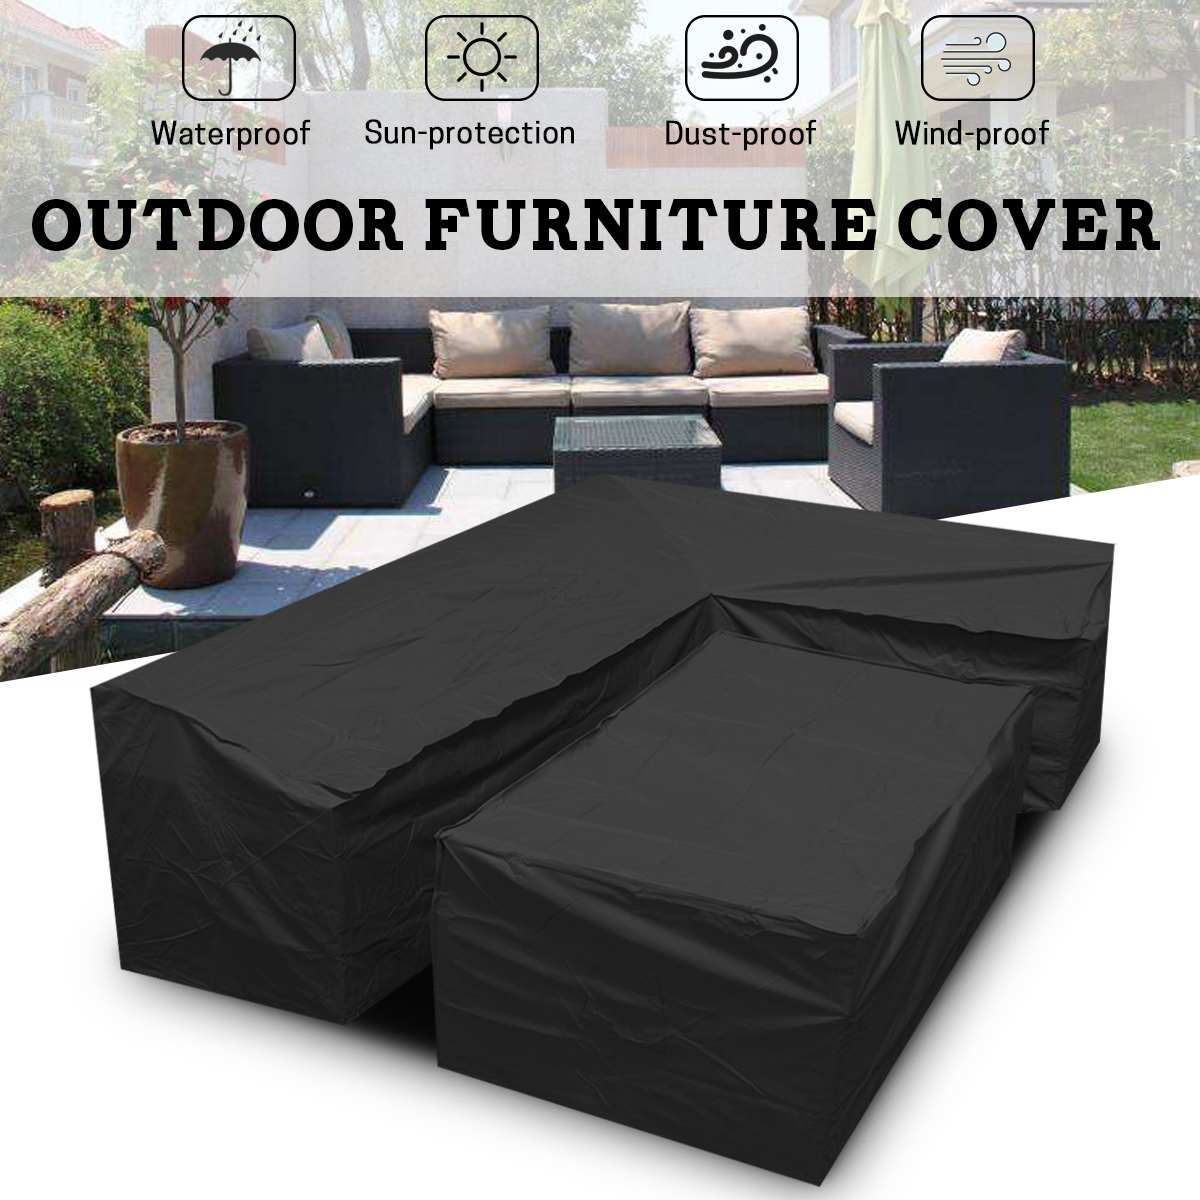 2pcs Waterproof Outdoor Patio Garden L Shape Furniture Covers Rain Snow Chair Covers Sofa Table Chair